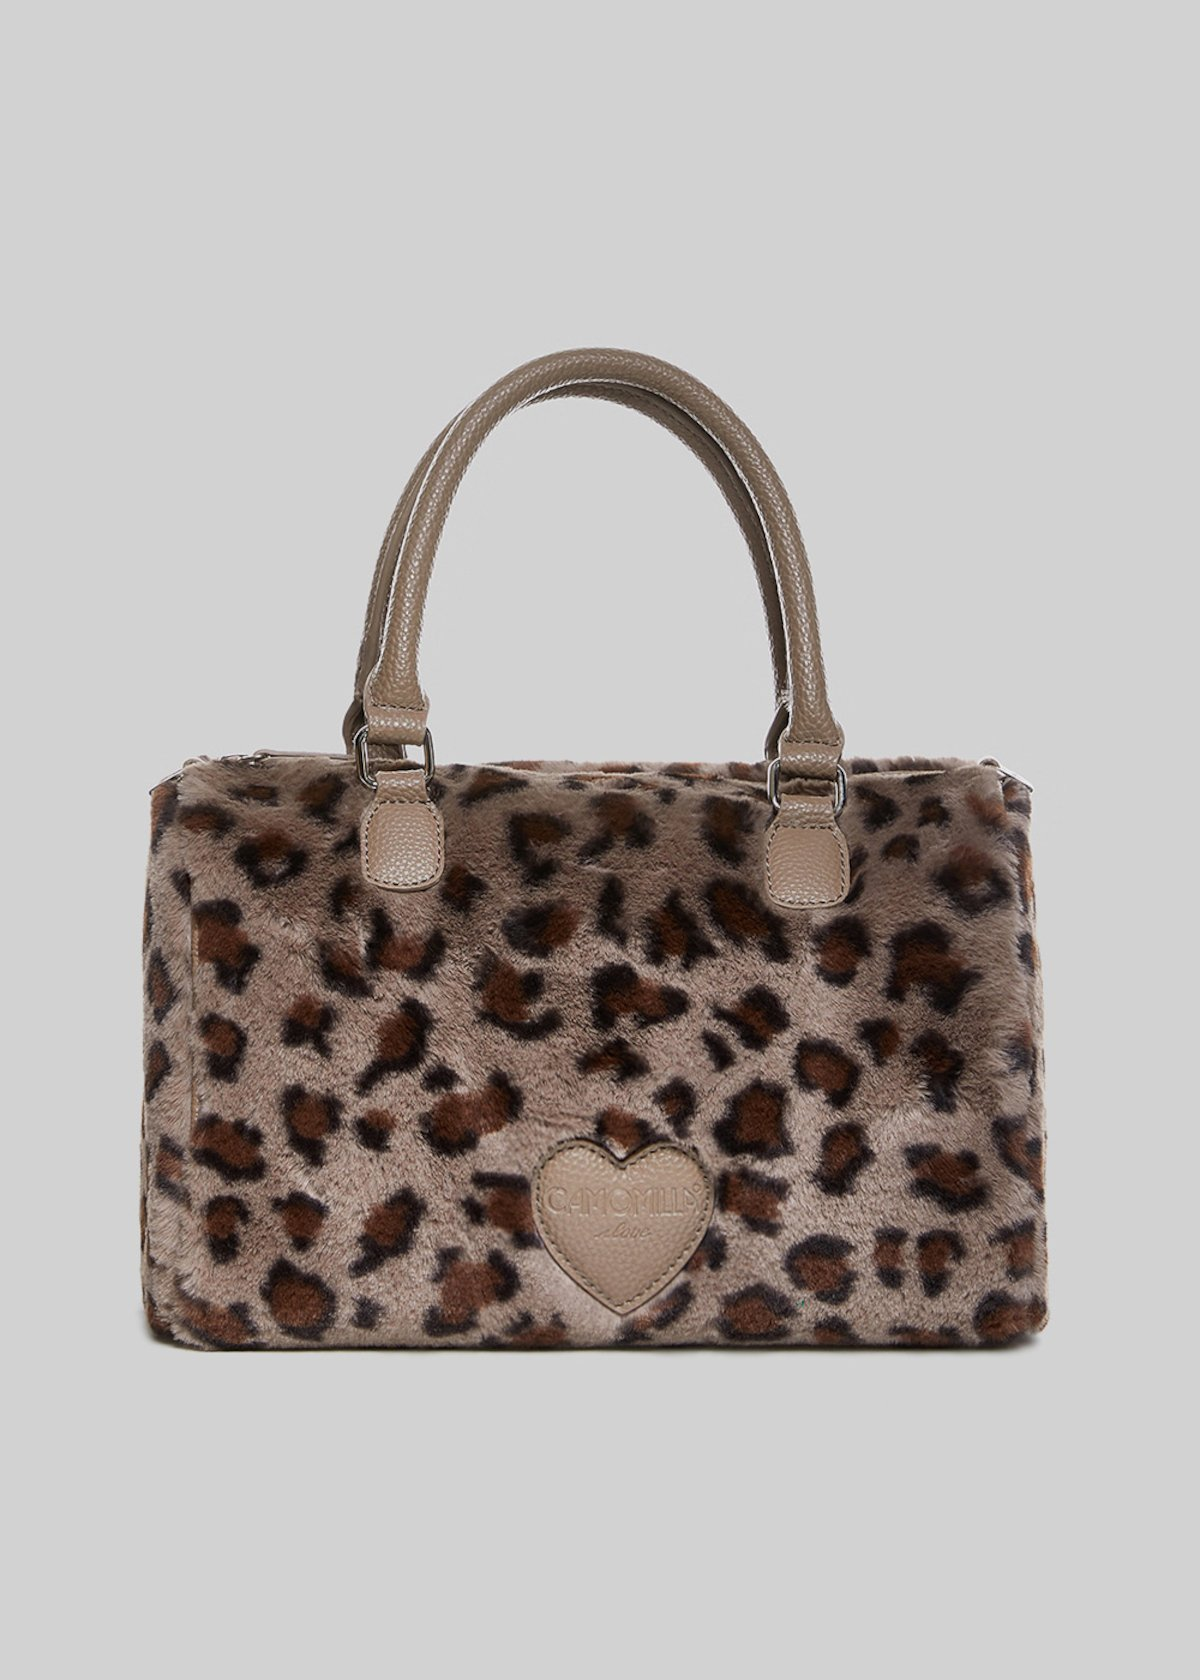 Bissy bag in faux fur with animalier design